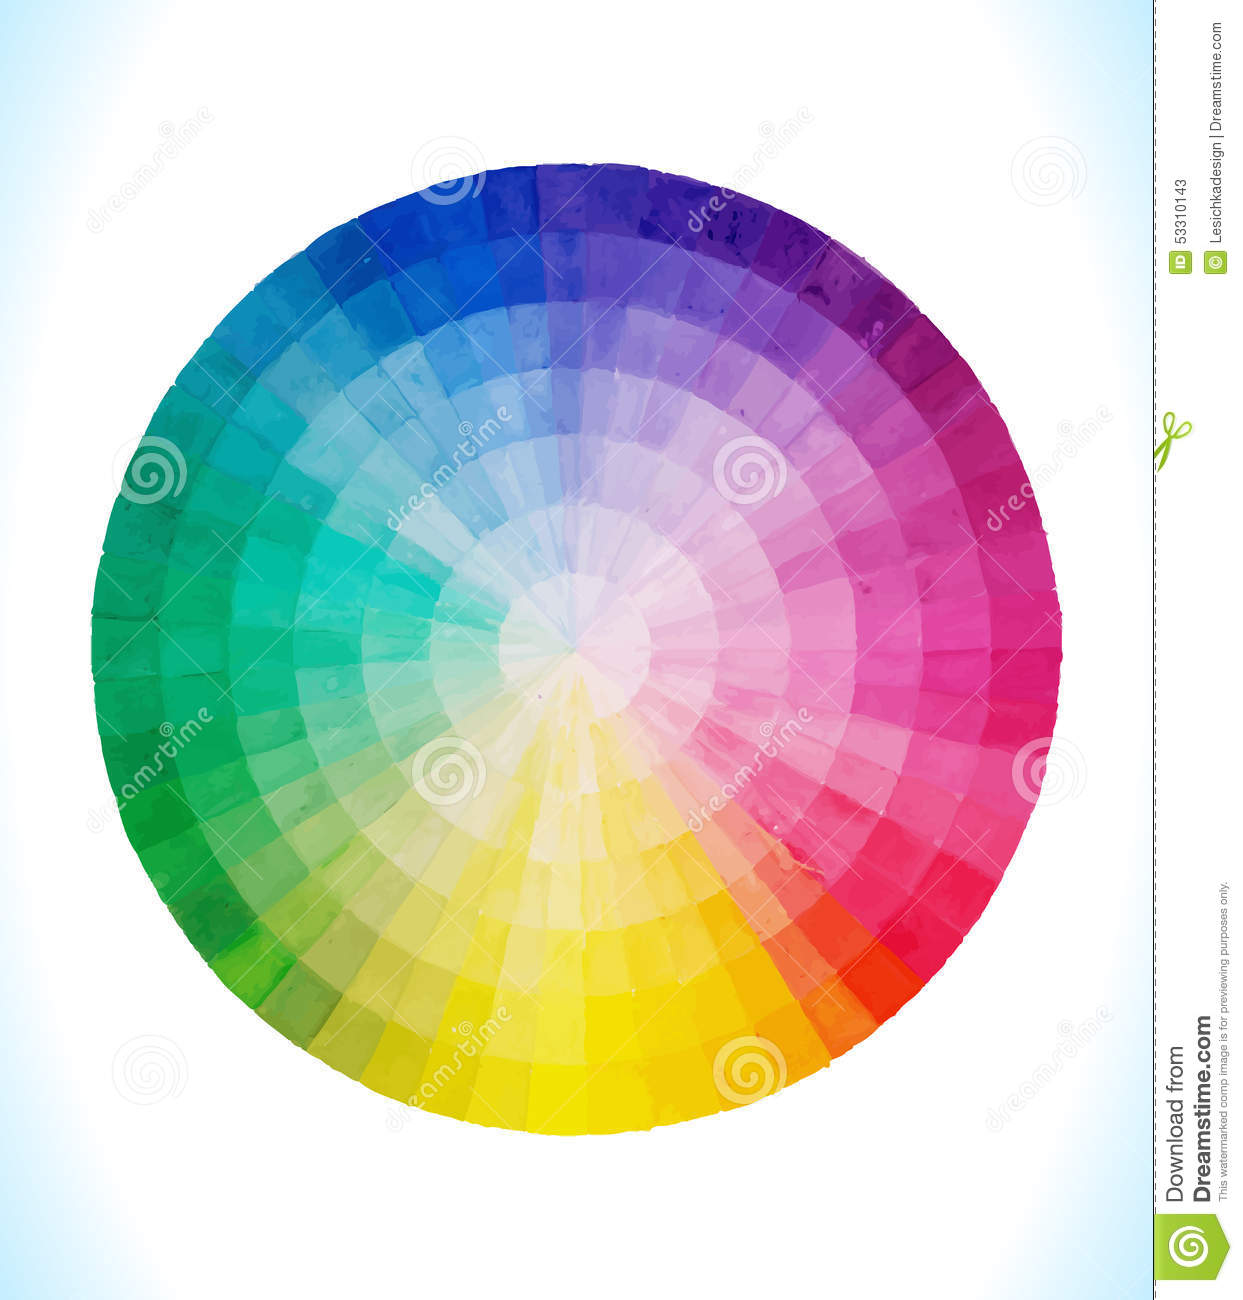 Spectral Circle Stock Vector  Image 53310143